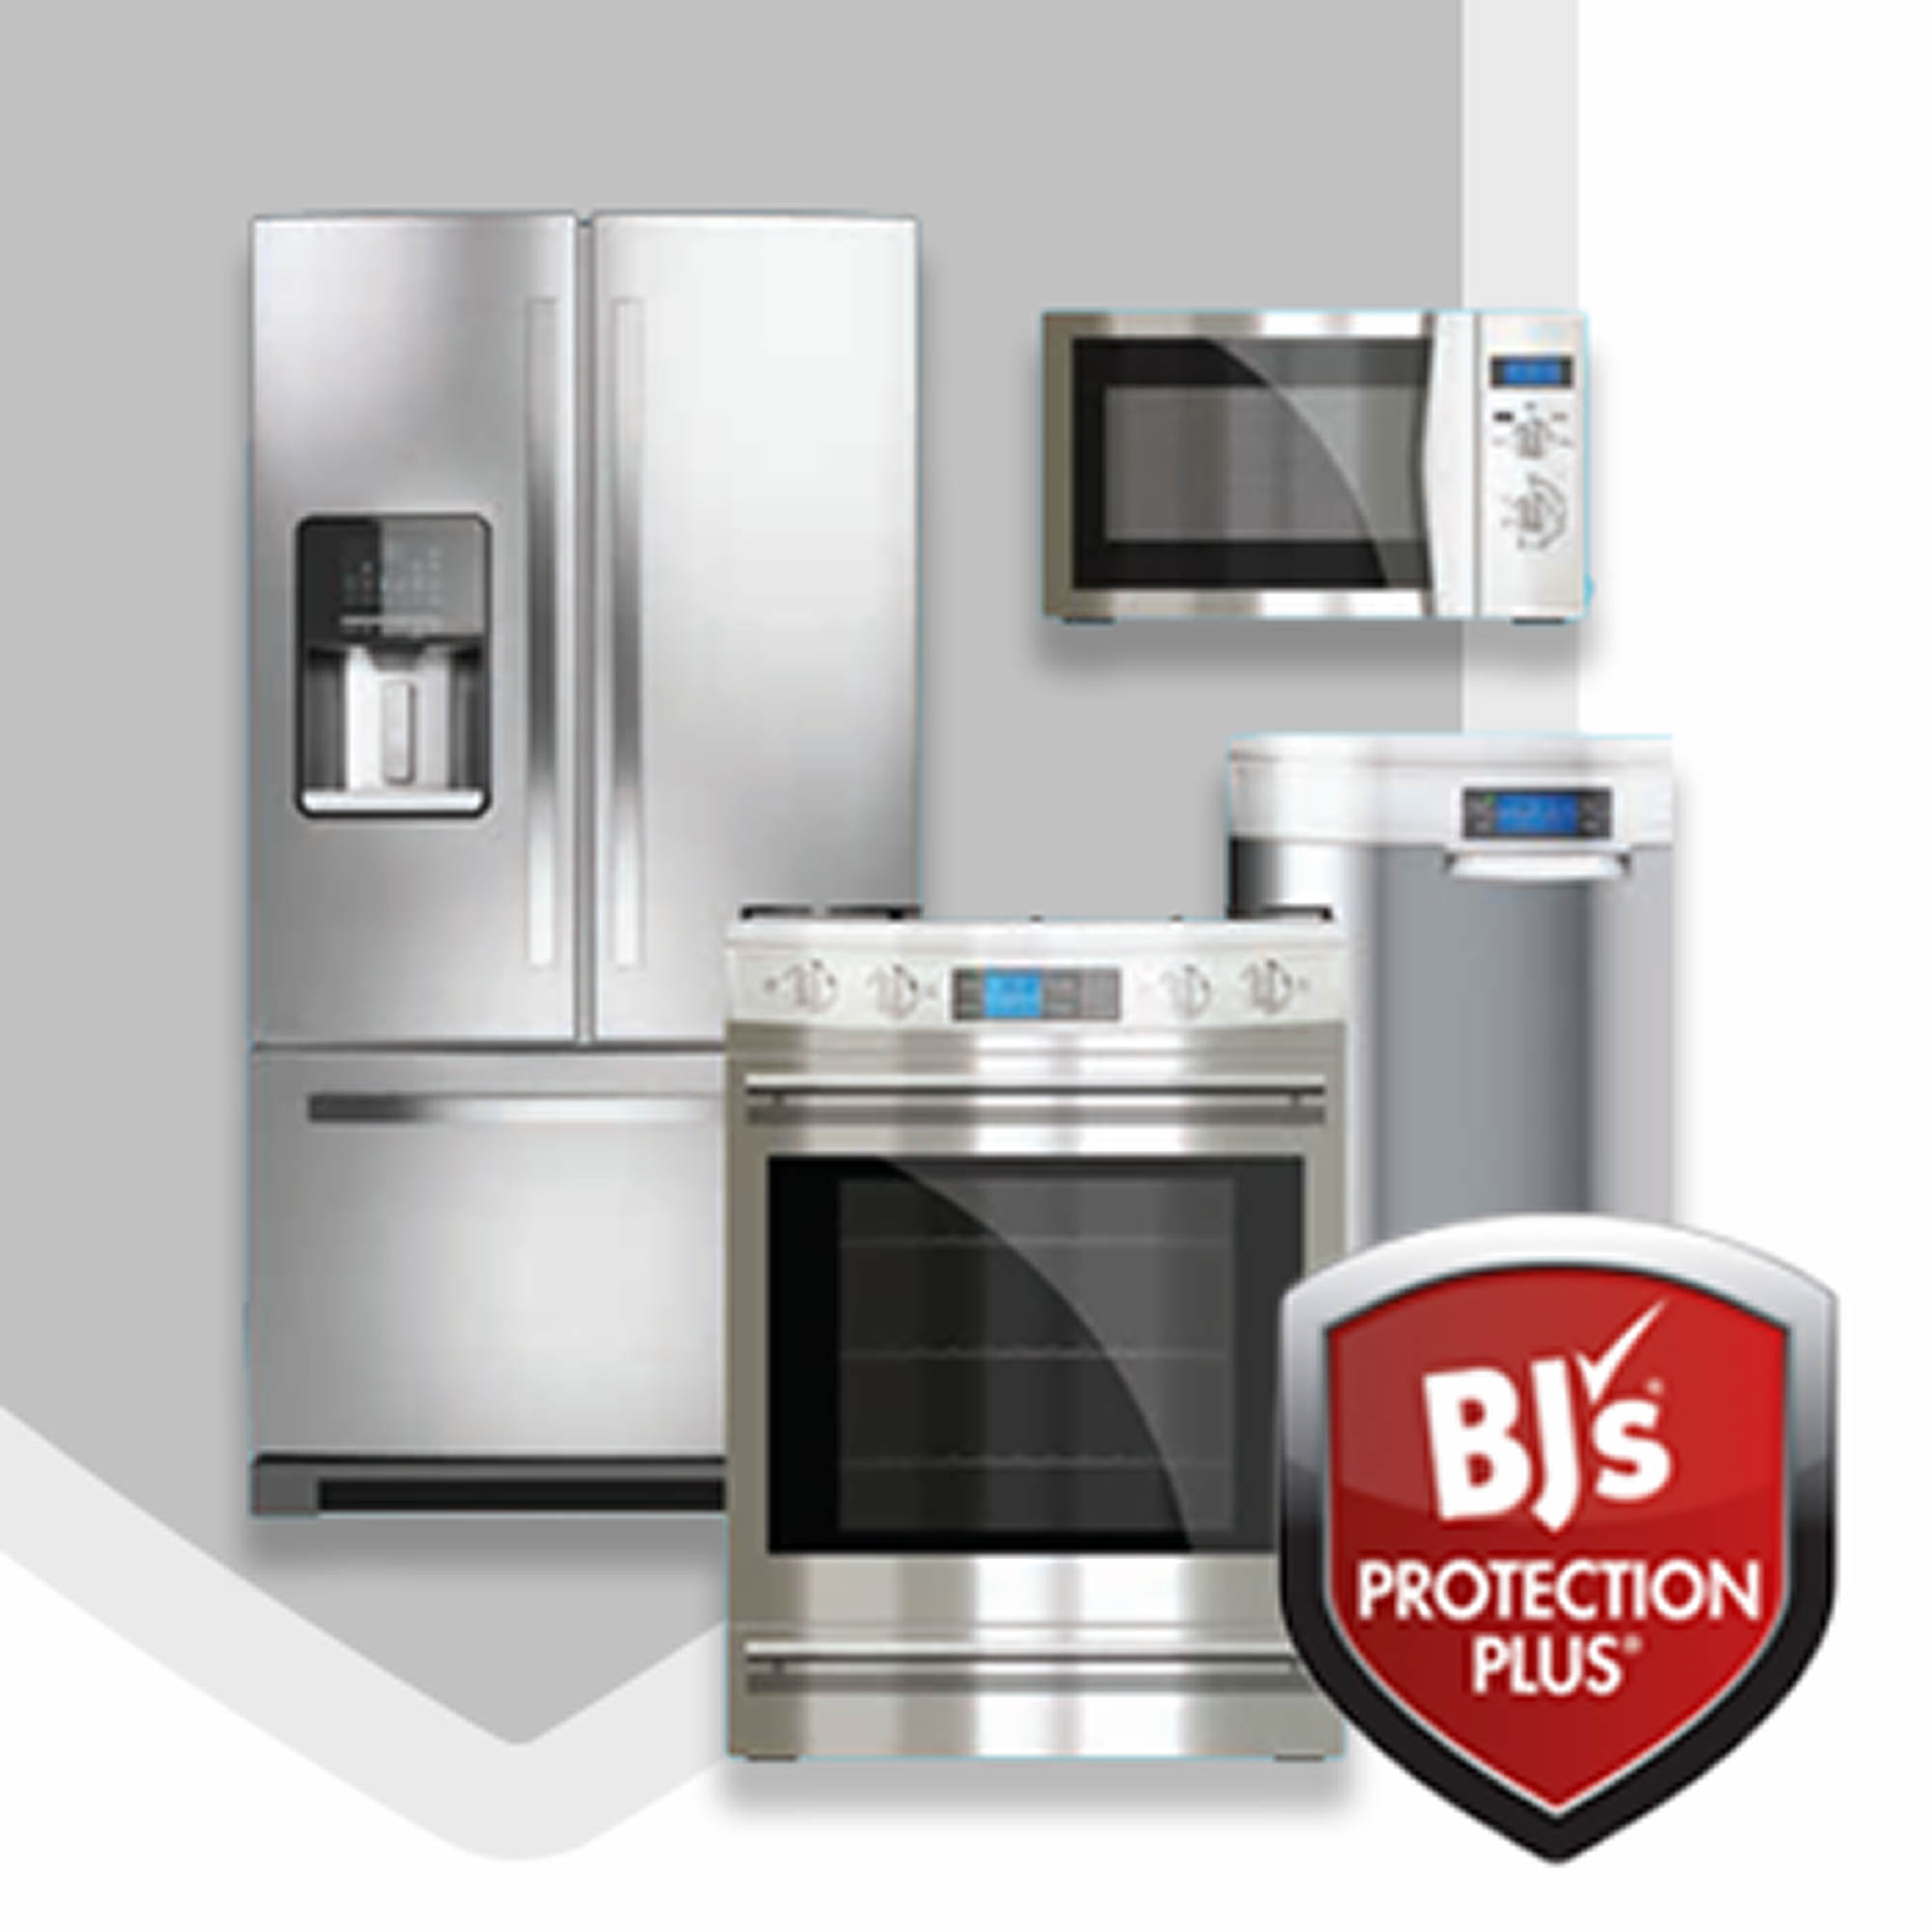 Bjs protection plus 4 year service plan for kitchen suites